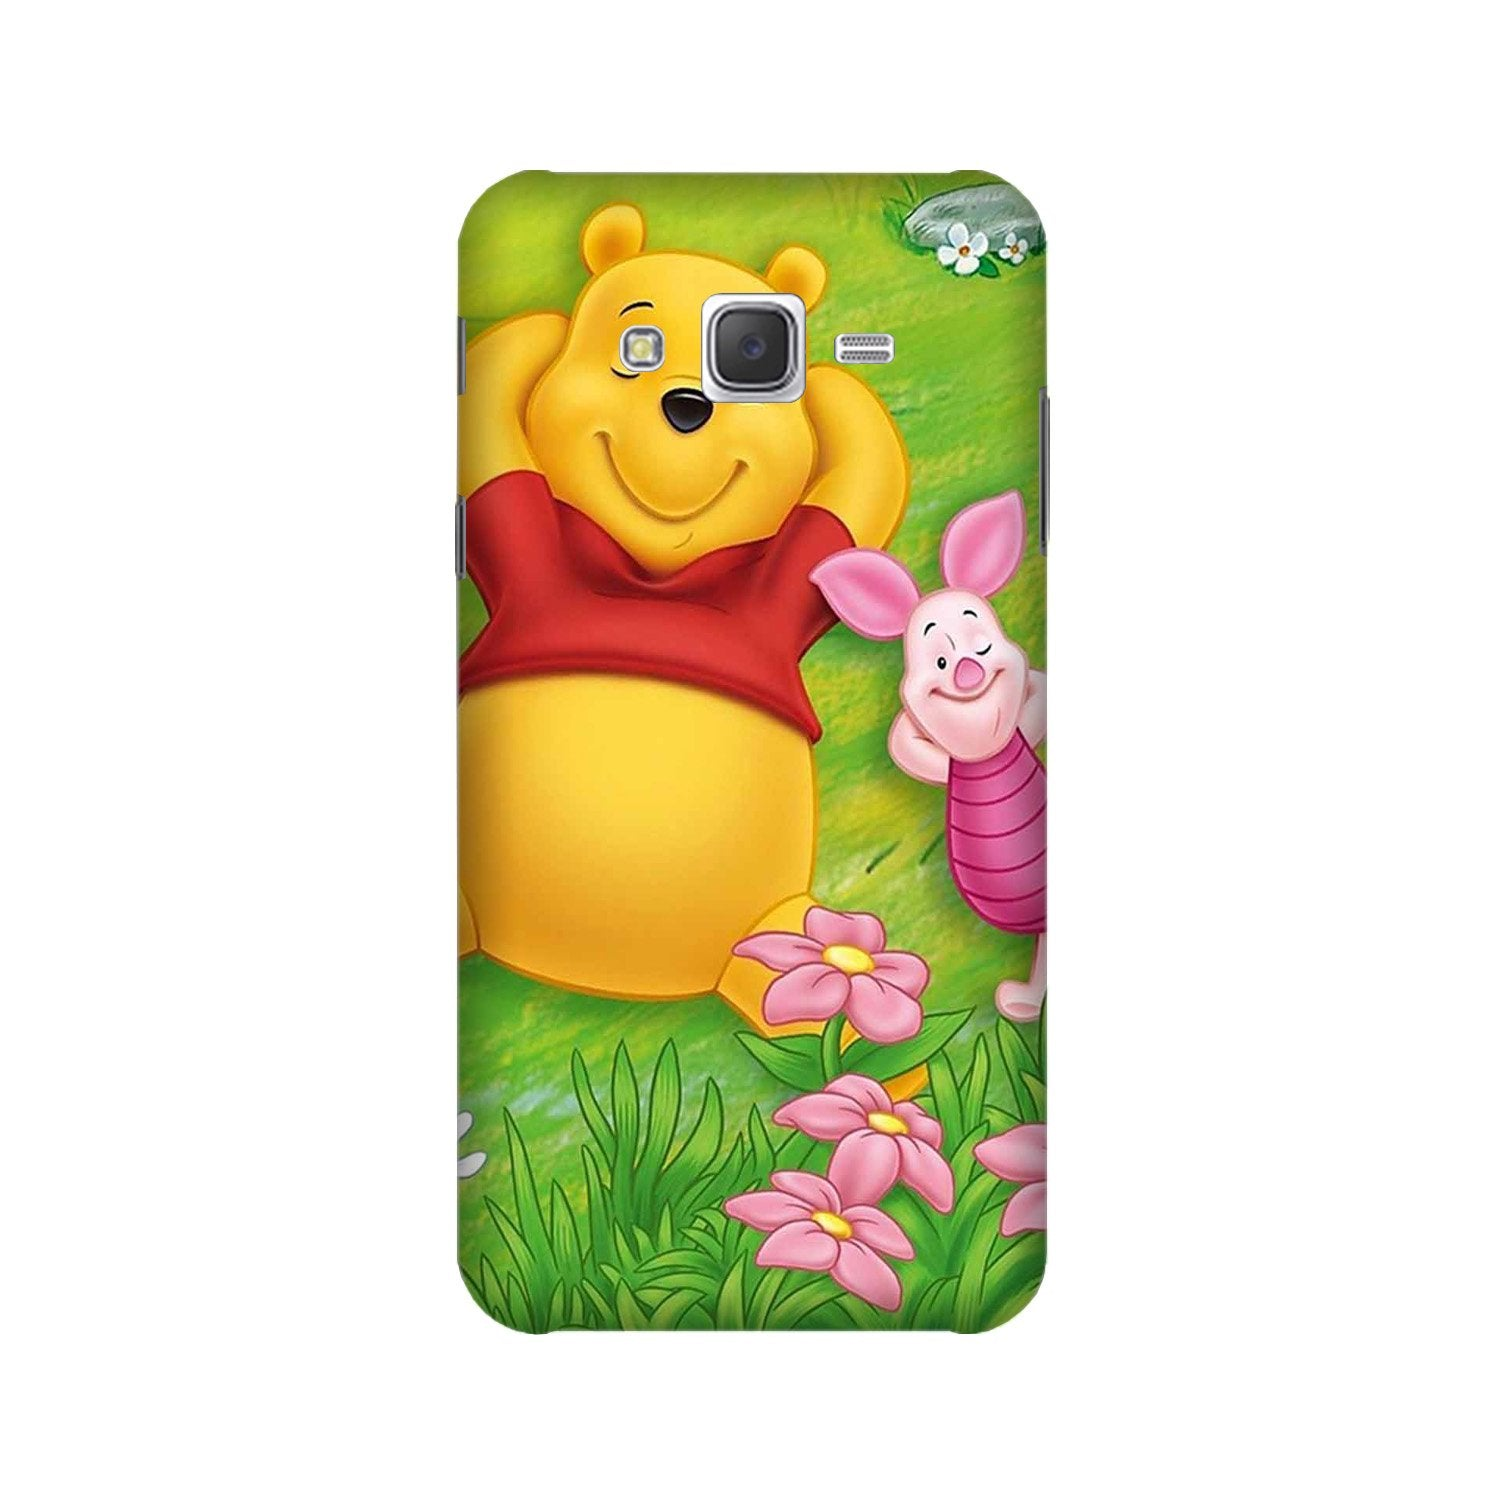 Winnie The Pooh Mobile Back Case for Galaxy A3 (2015) (Design - 348)